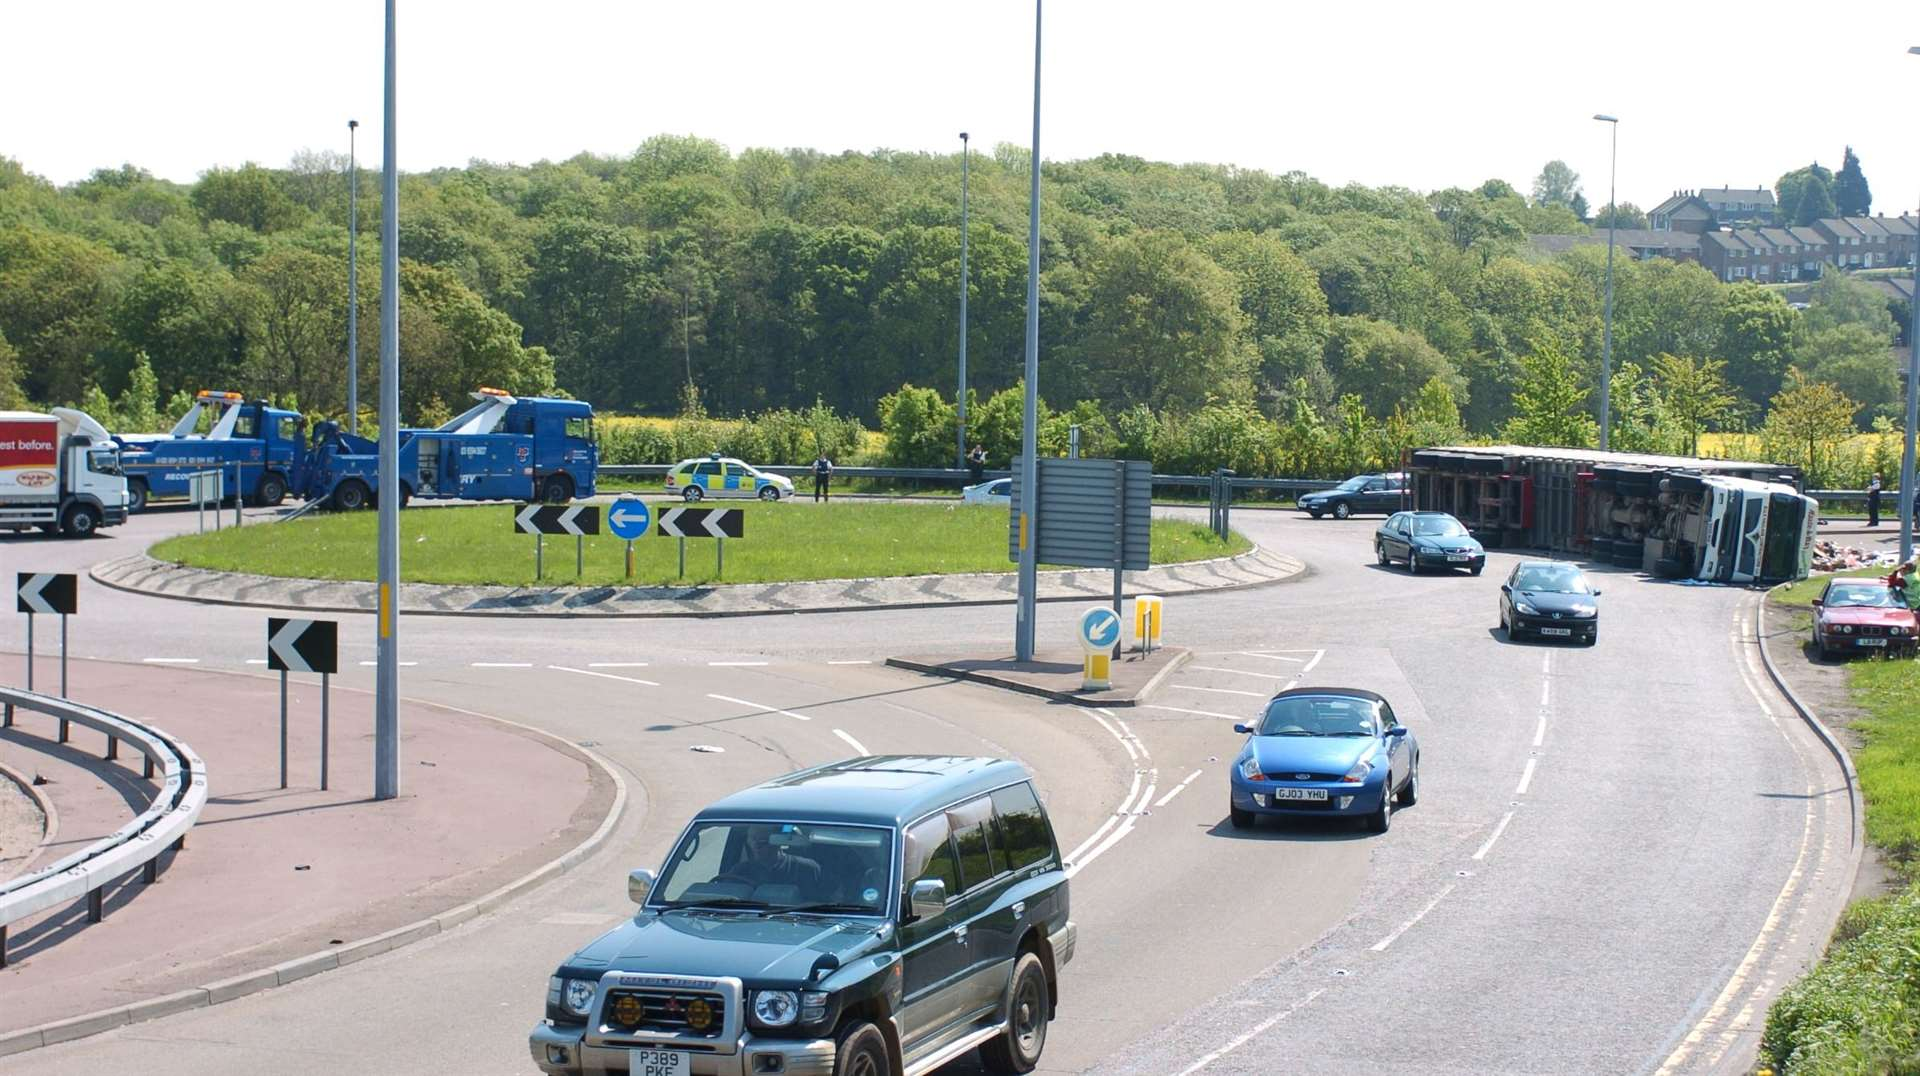 The Bean Interchange A2 Roundabout Slip has been the scene of various serious accidents